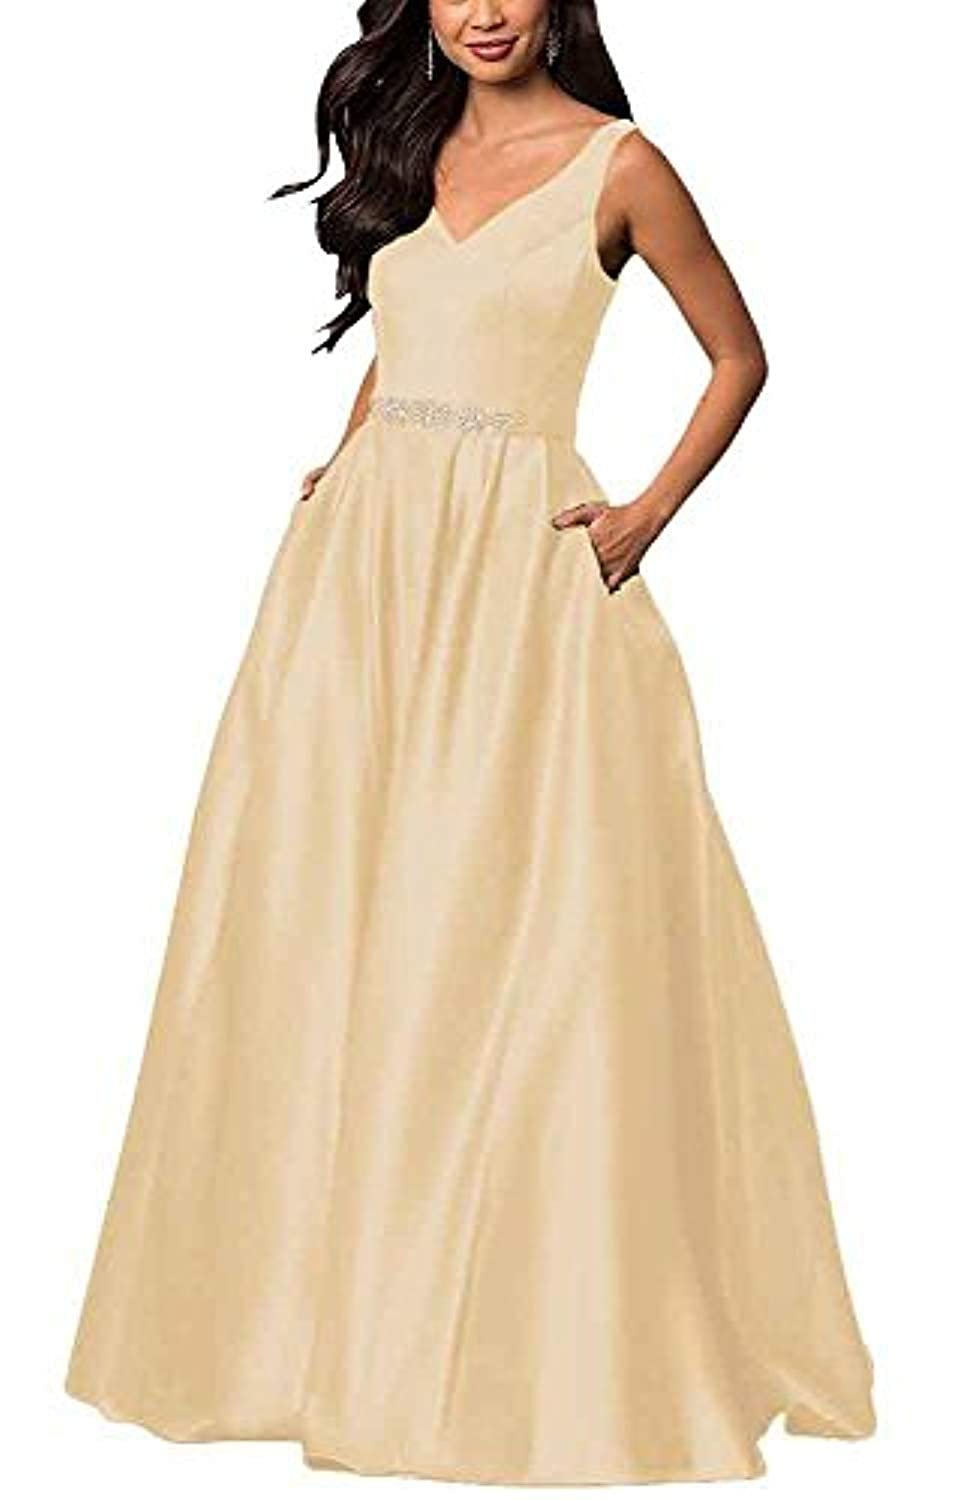 Champagne YHFDRESS Vintage Beaded A Line Evening Dresses V Neck Ruffles Satin Formal Party Gowns